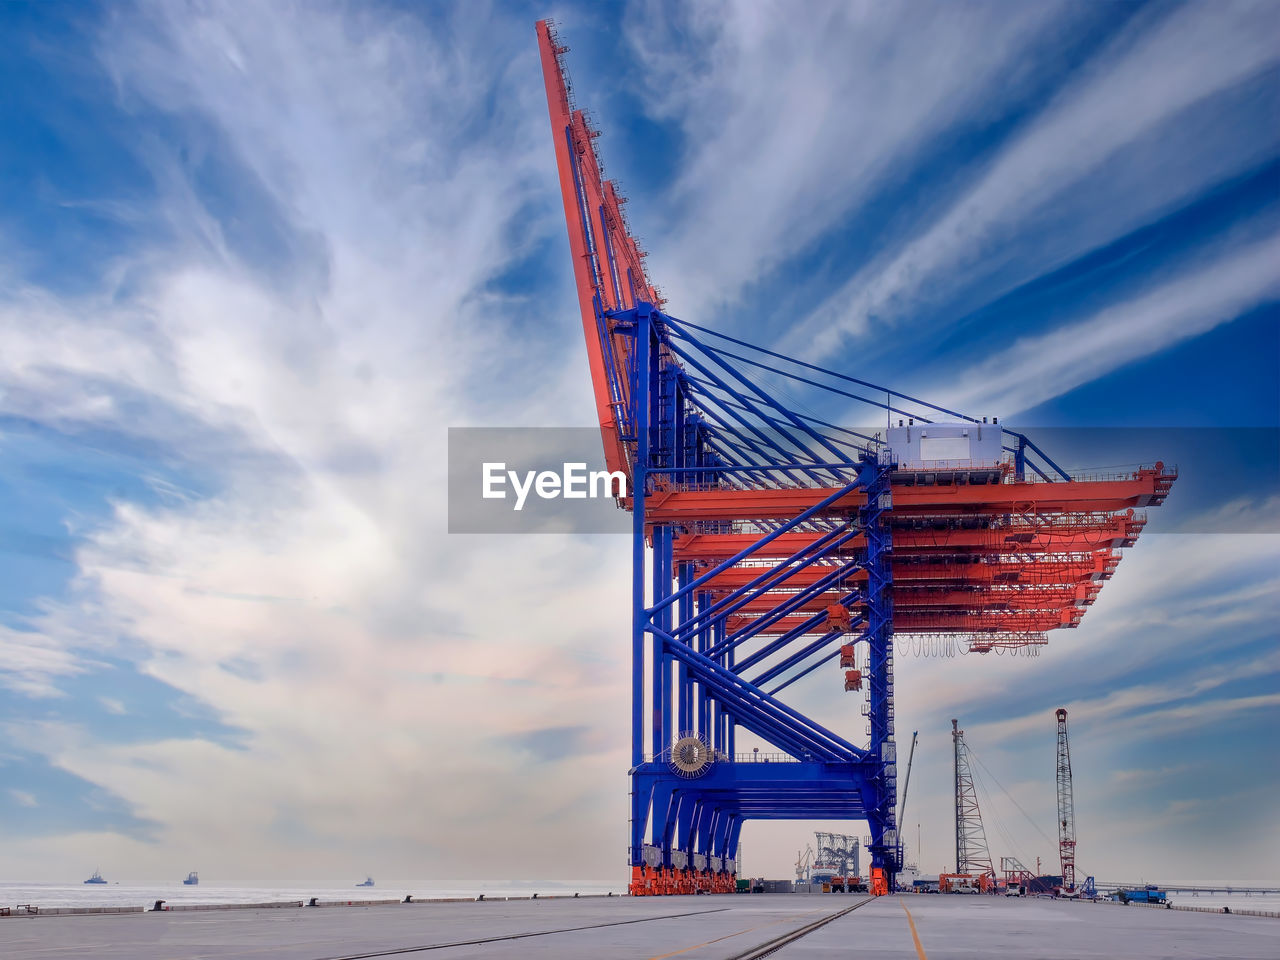 cloud - sky, sky, crane - construction machinery, built structure, architecture, transportation, no people, outdoors, freight transportation, industry, commercial dock, red, day, building exterior, nature, beauty in nature, shipyard